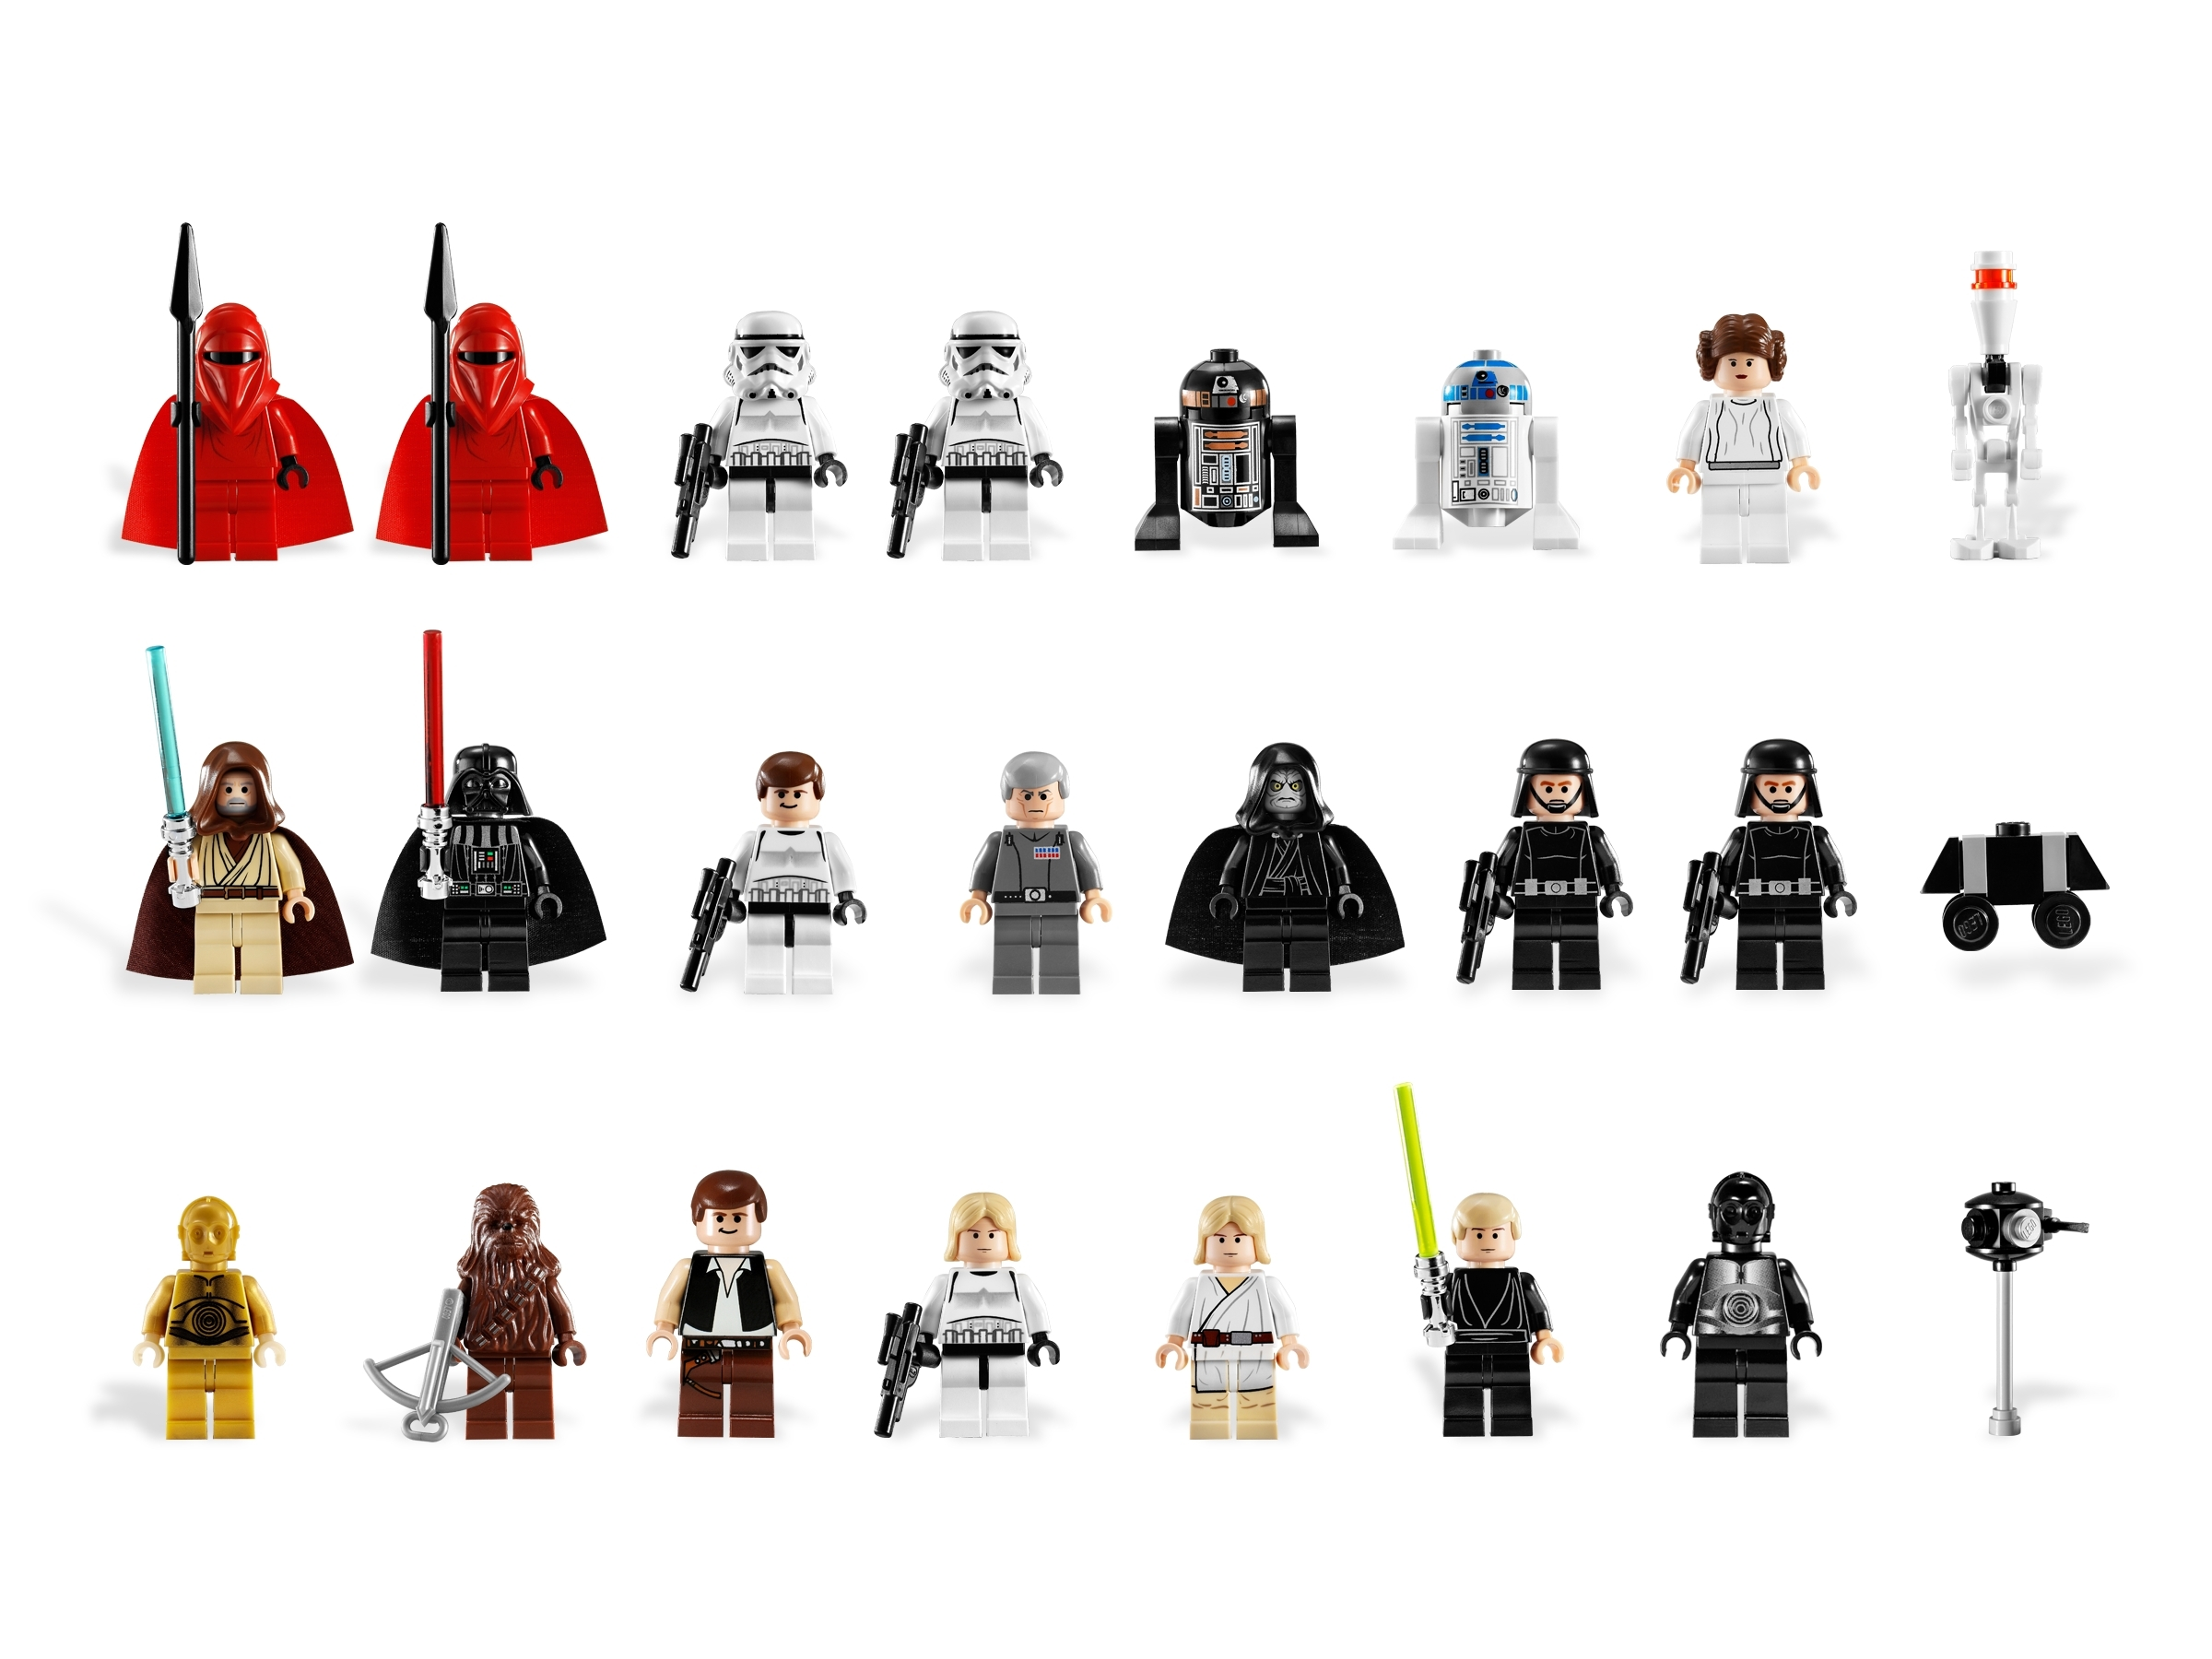 Lego Minifigure StarWars from 10188 Luke Skywalker,DarthVader.Obi-Wan,Palpatine